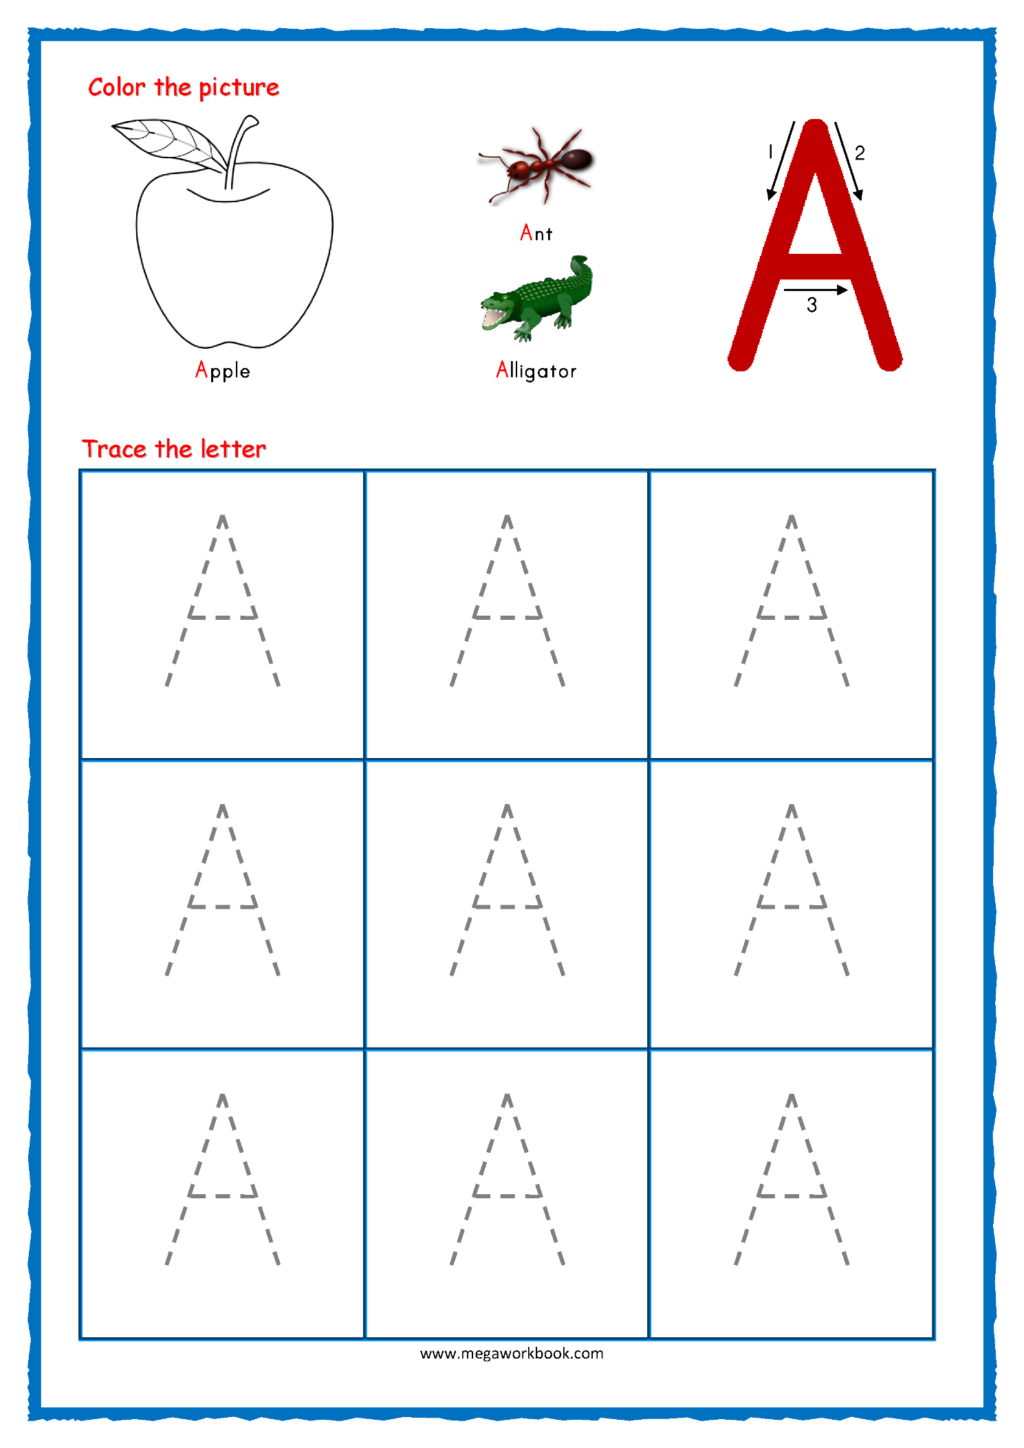 Worksheet ~ Capital Letter Tracing With Crayons 01 Alphabet within Alphabet Tracing Name